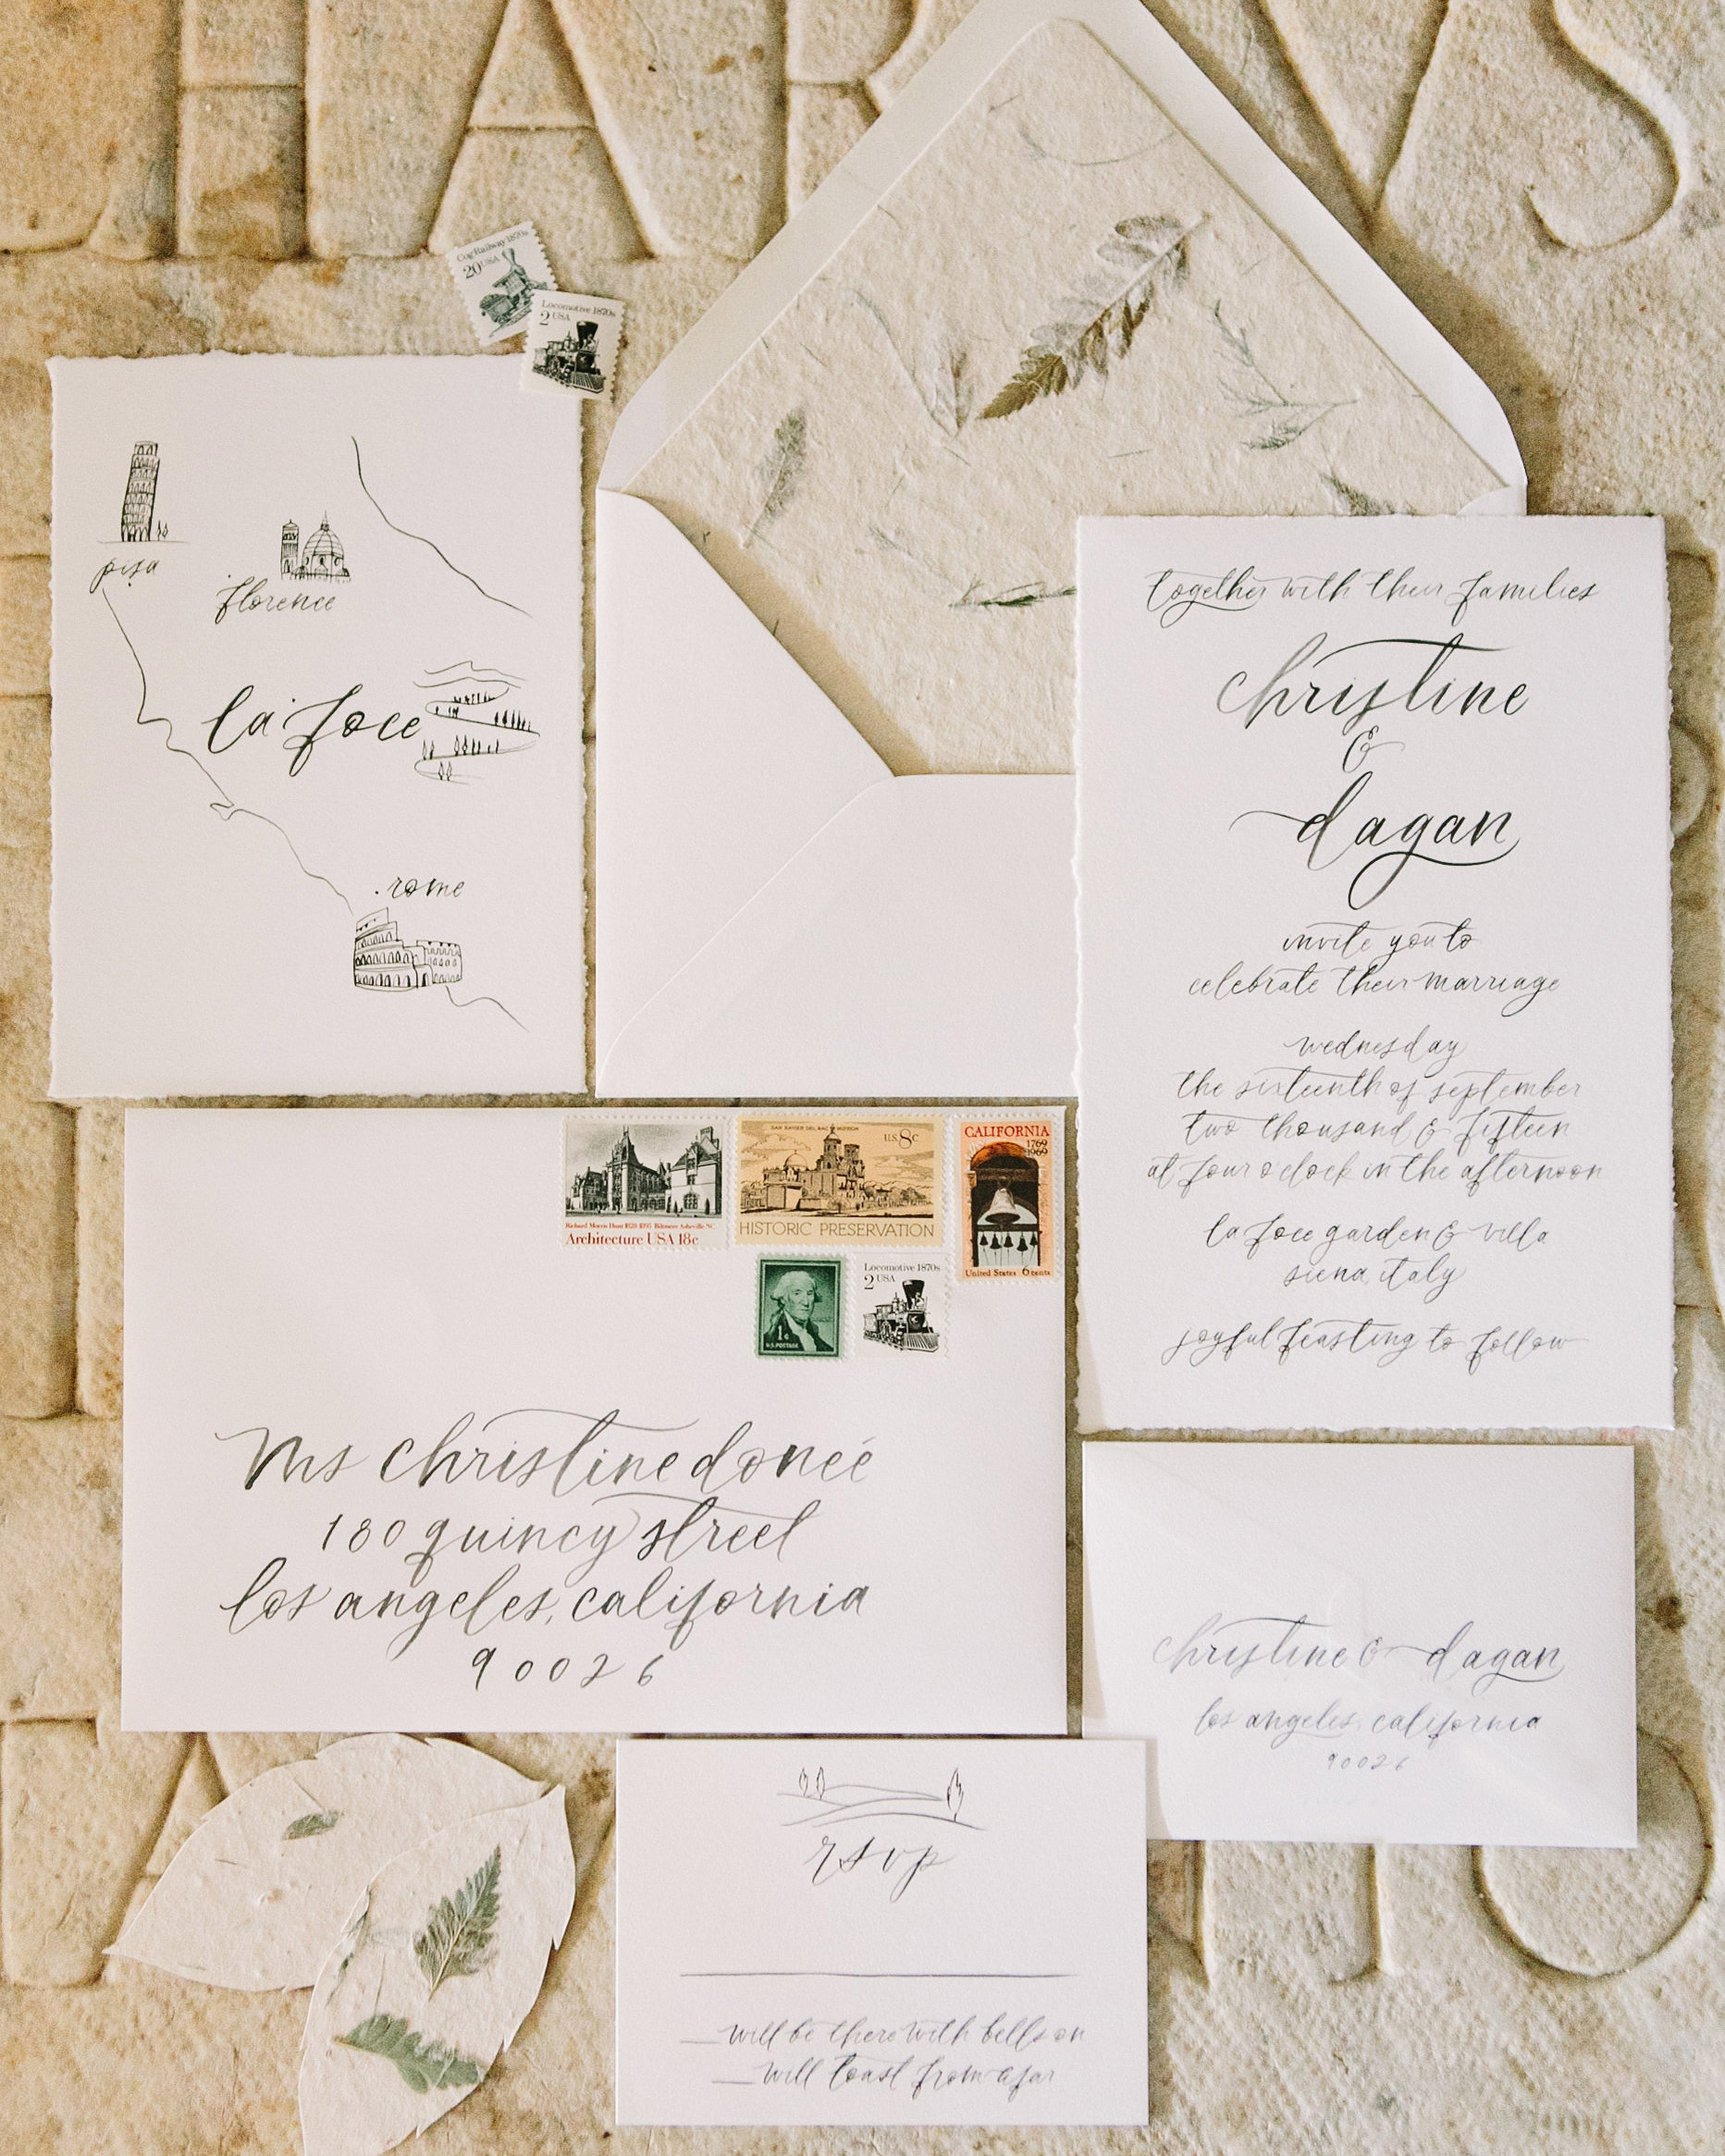 christine-dagan-wedding-invite-6281-s113011-0616.jpg